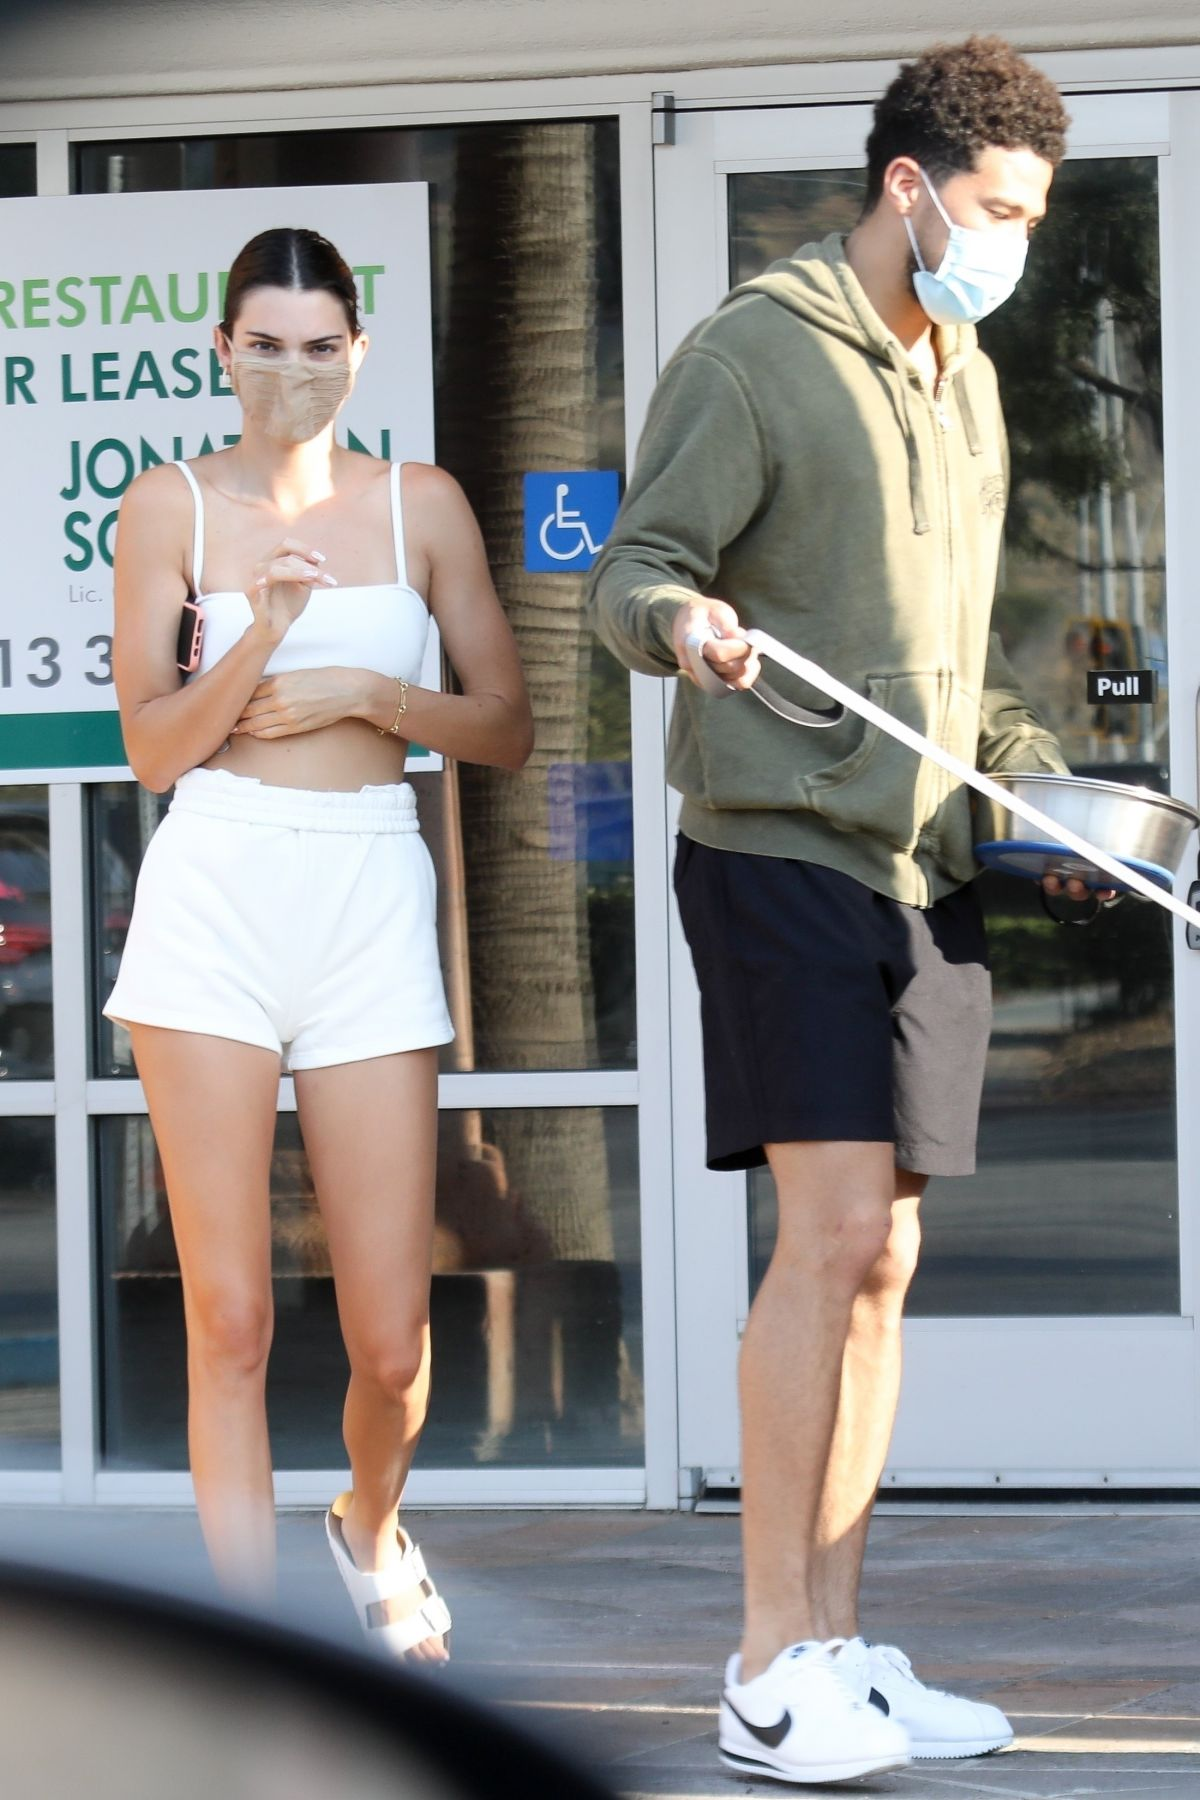 KENDALL JENNER and Devin Booker at a Pet Shop in Malibu 08 ...